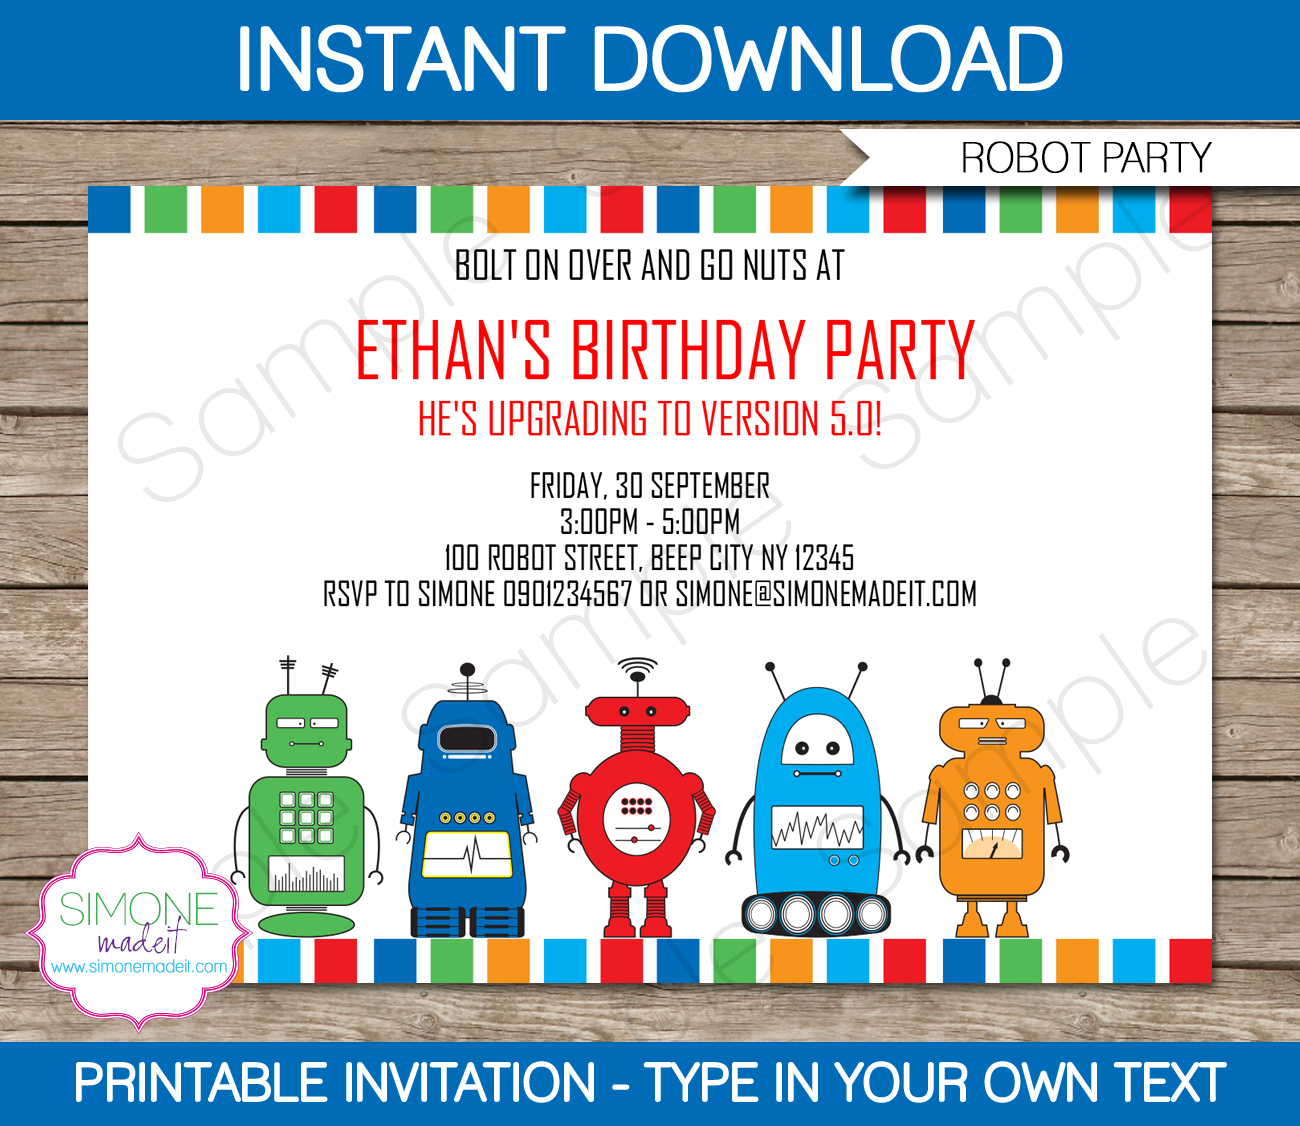 Robot Party Invitations Template | Birthday Party - Simone Made It Free Printables